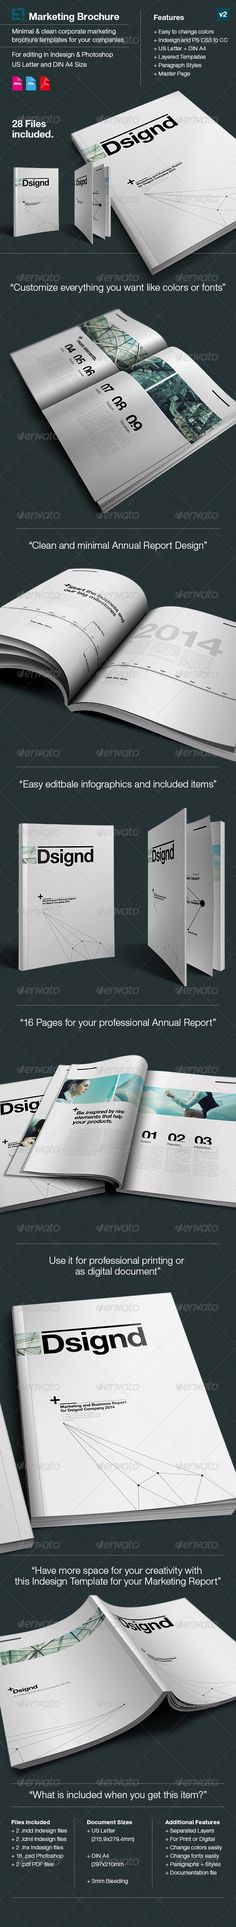 Swiss Design Marketing Report - Dsignd v2 Marketing report - marketing report